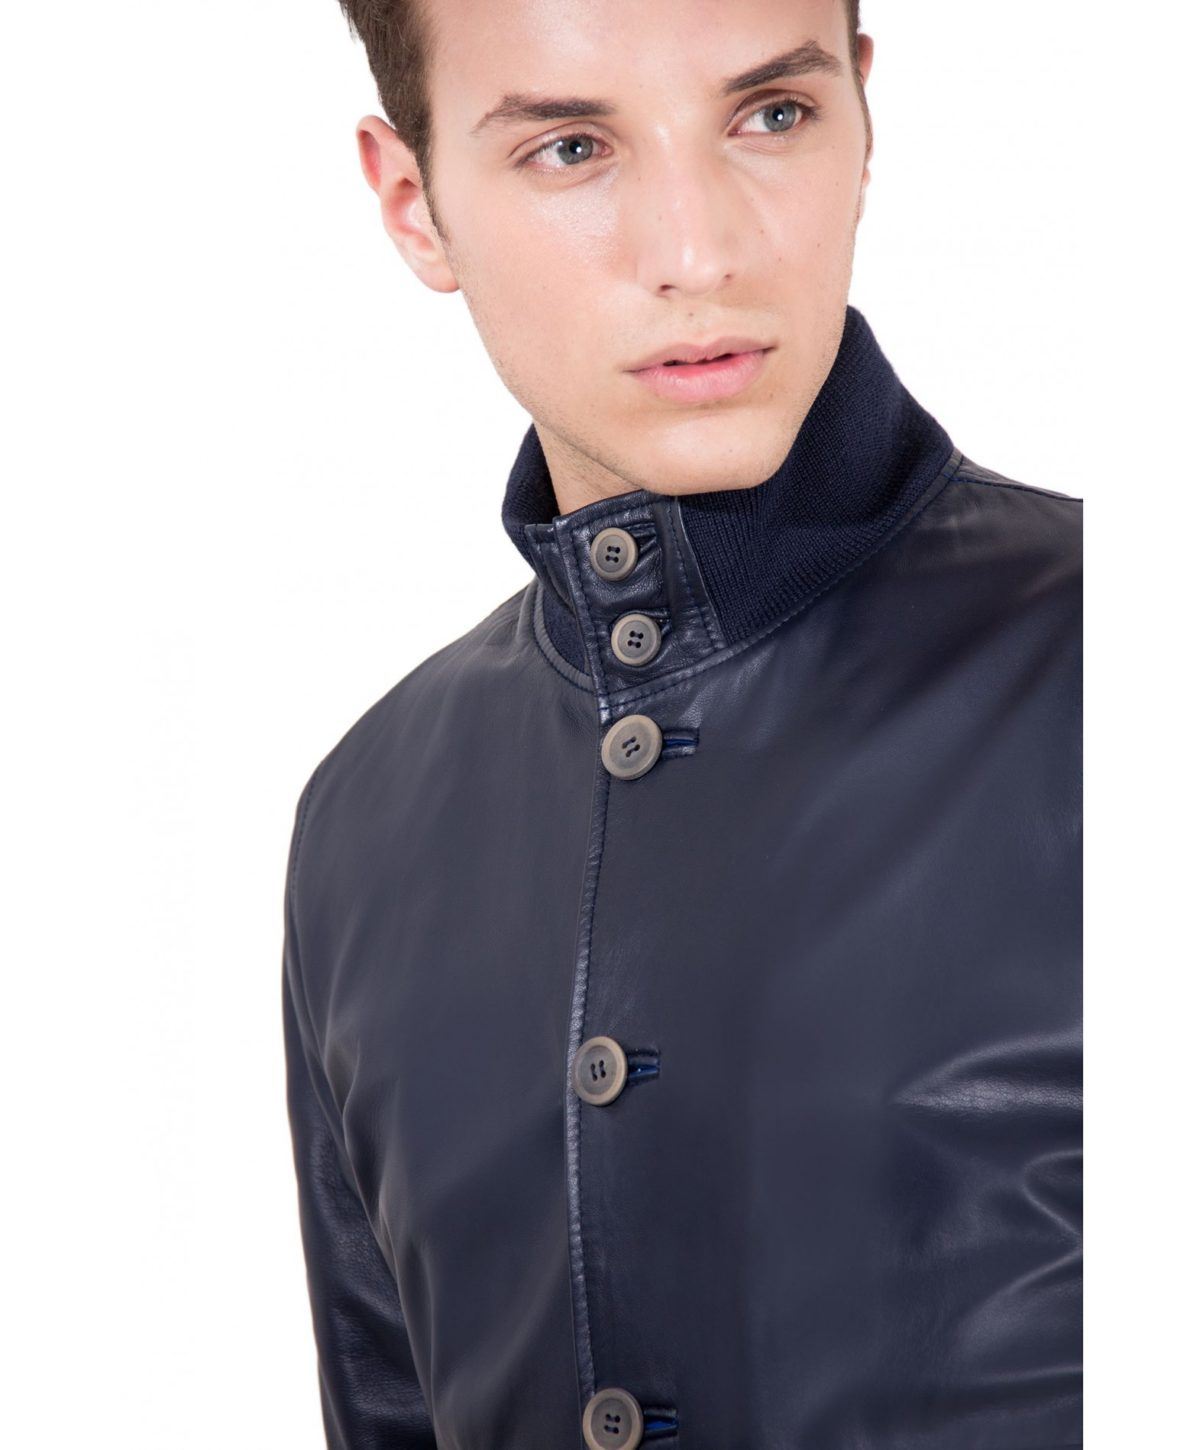 men-s-leather-jacket-genuine-soft-leather-style-bomber-wool-cuffs-and-bottom-buttons-closing-blue-color-alex-bottoni (1)